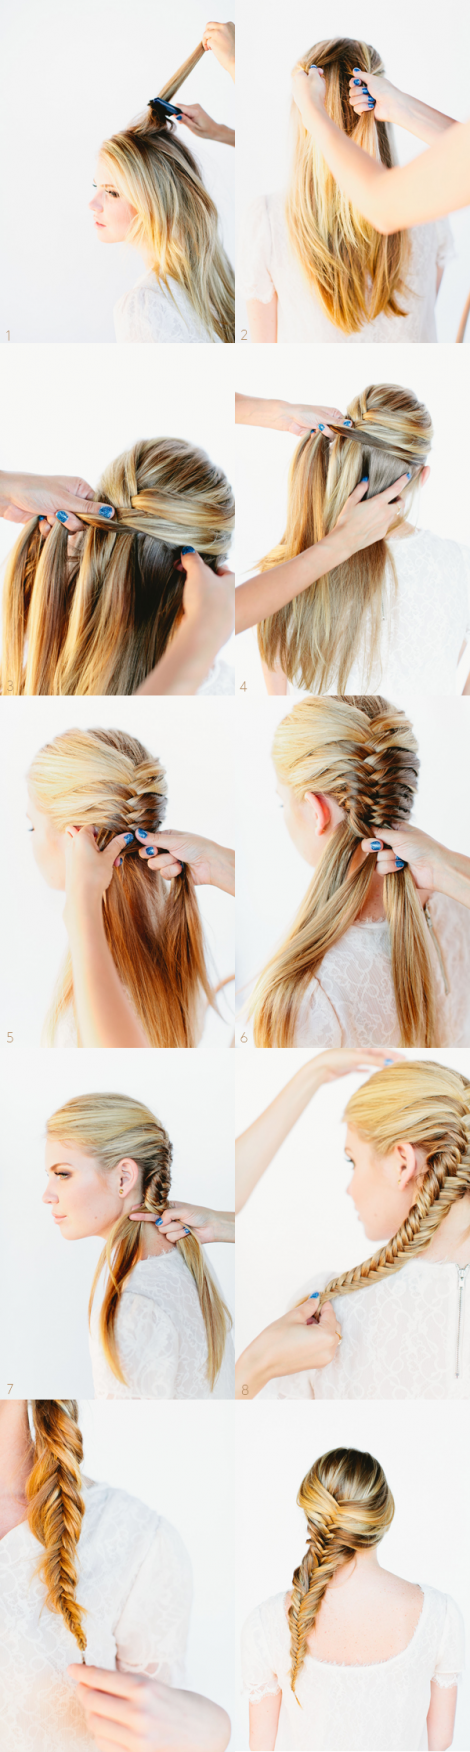 16-FISHTAIL-BRAID-HAIR